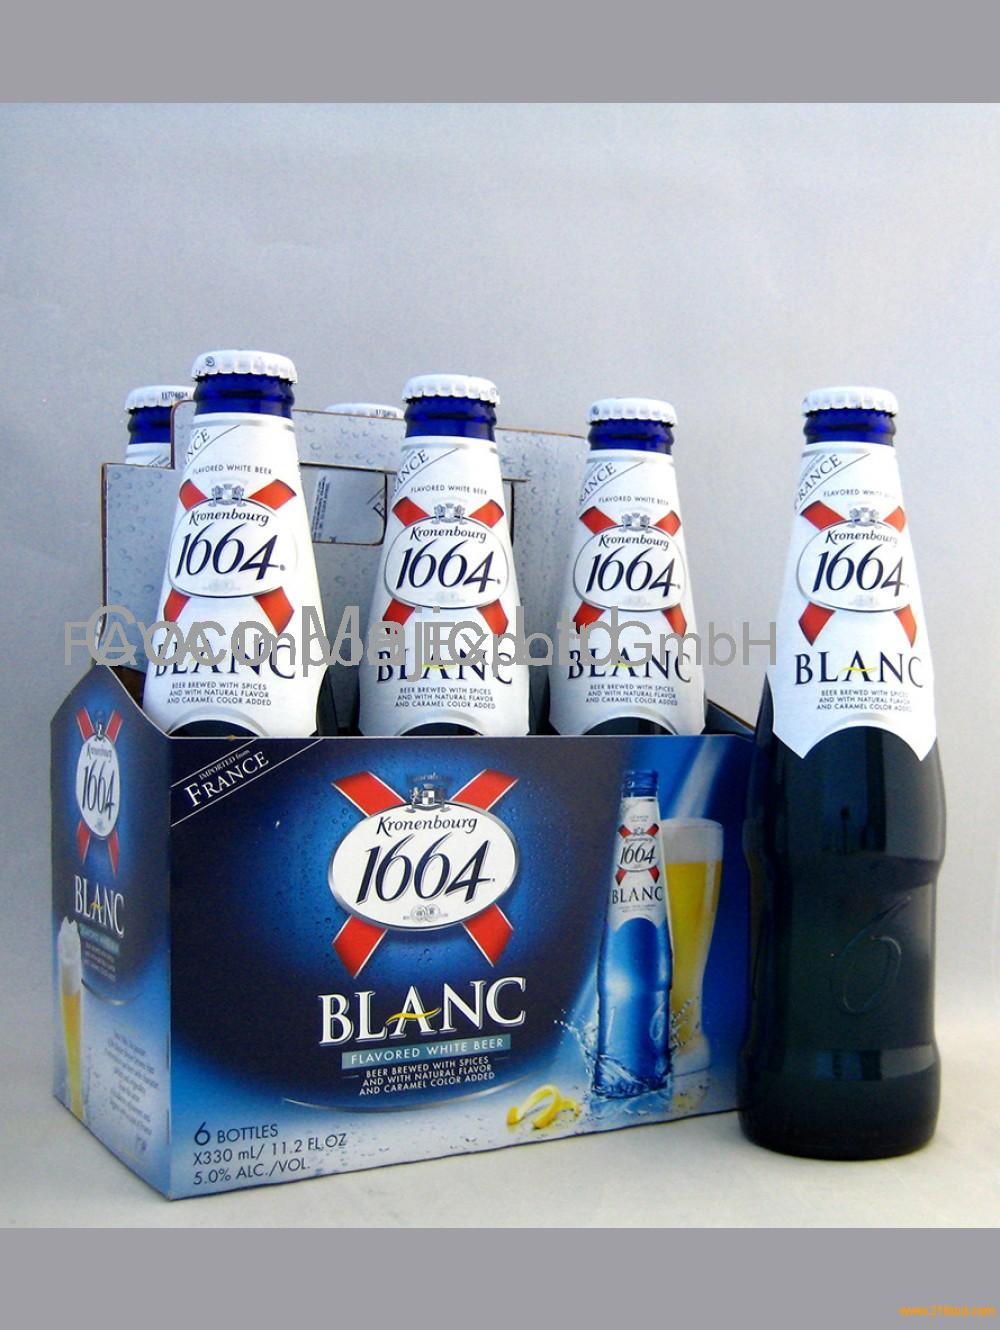 French Origin Kronenbourg 1664 blanc beer in blue 25cl and 33cl Bottles